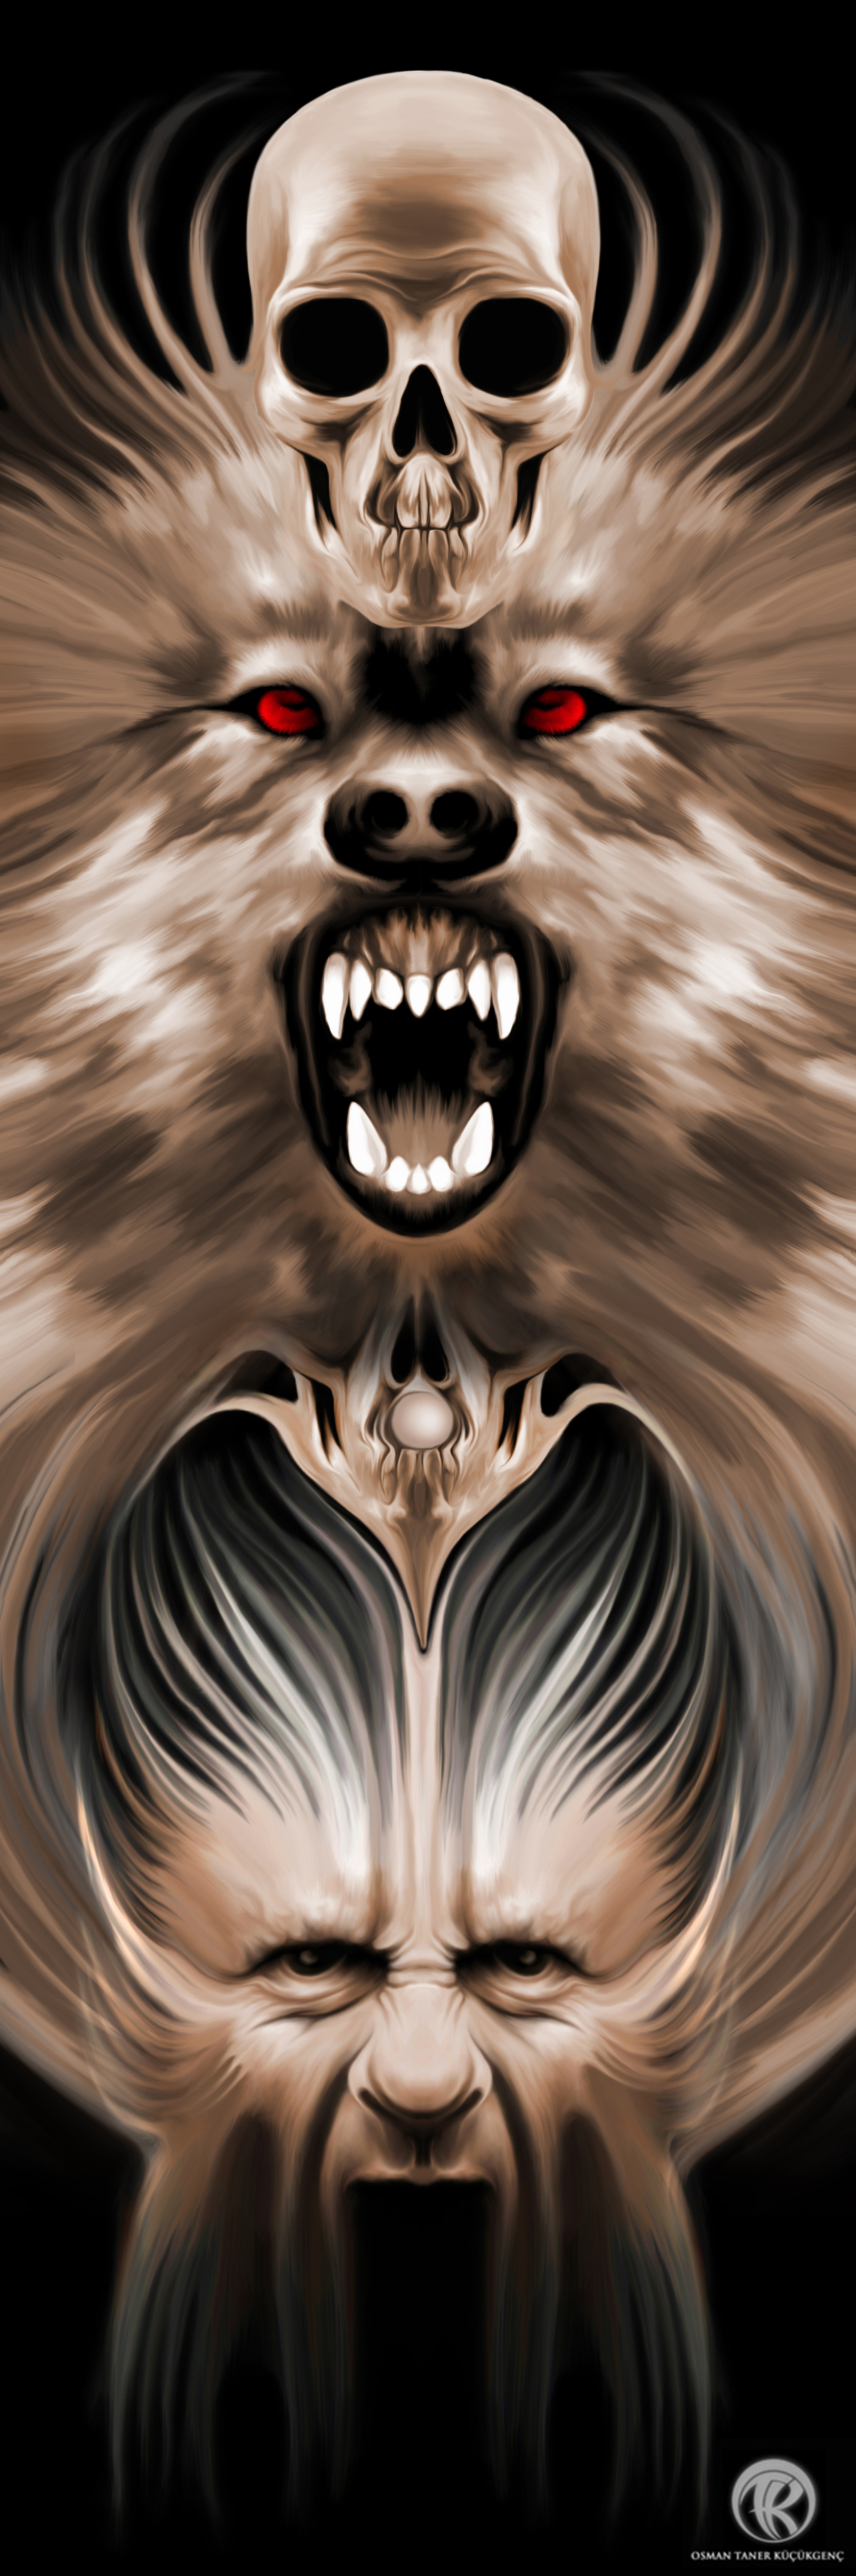 WOLF ALPHA Digital Painting wacom intuos 5 - Photoshop CS5